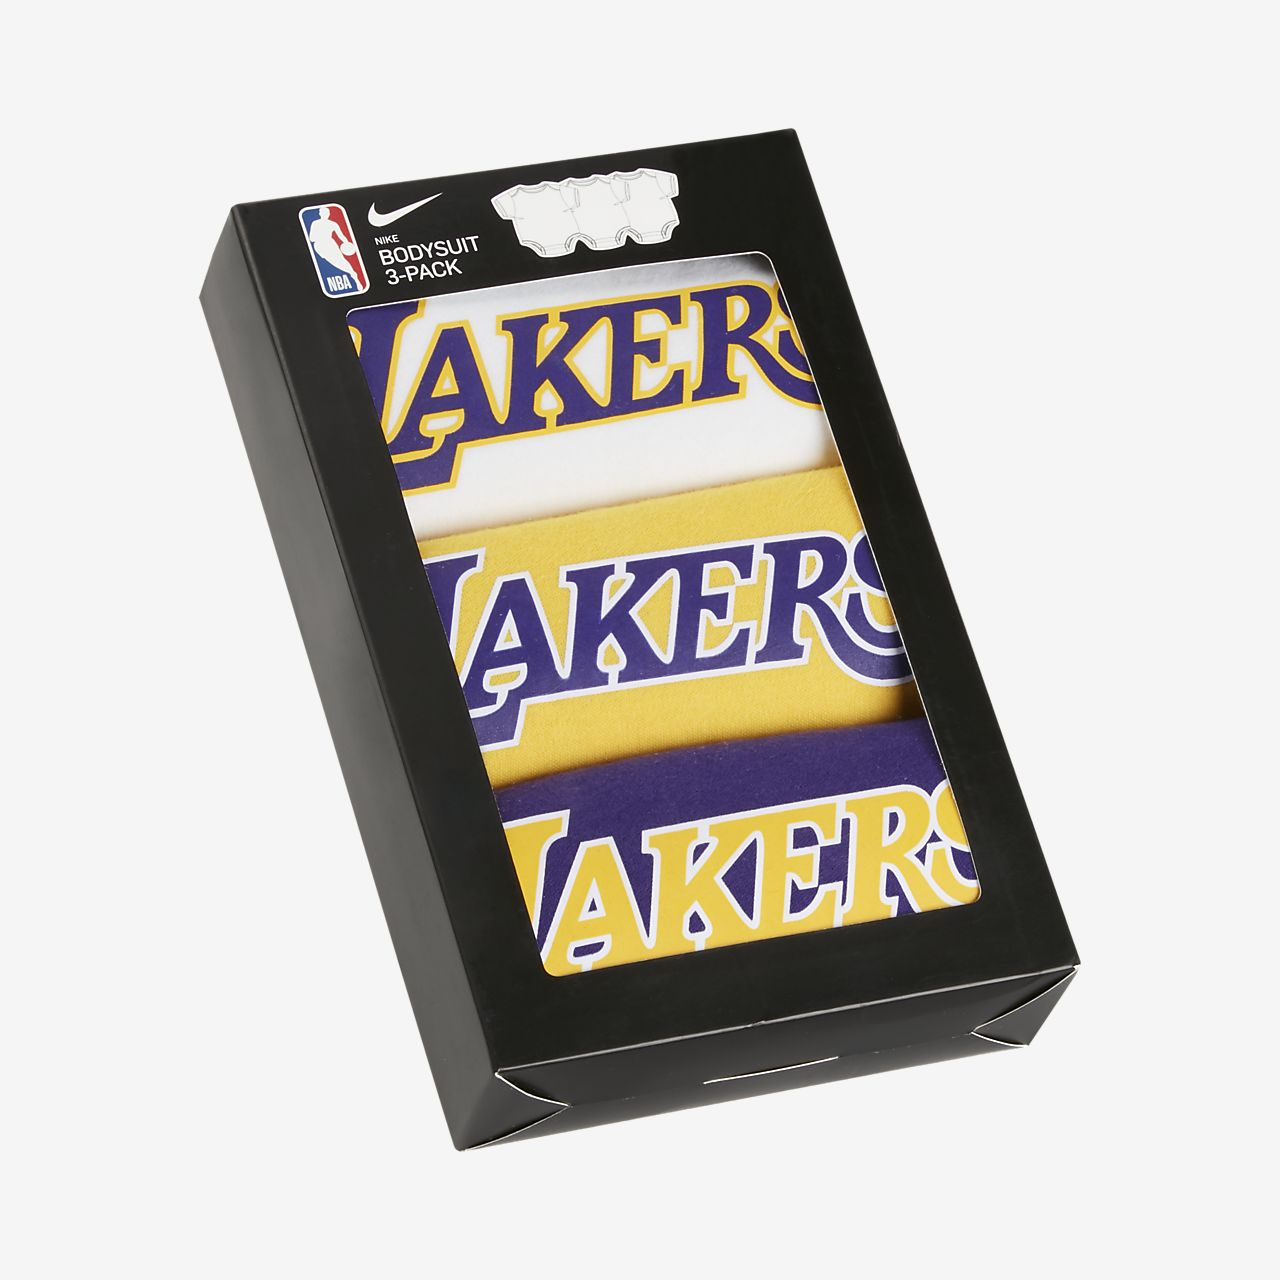 Bodyset Lakers Nike NBA för baby (3-pack)